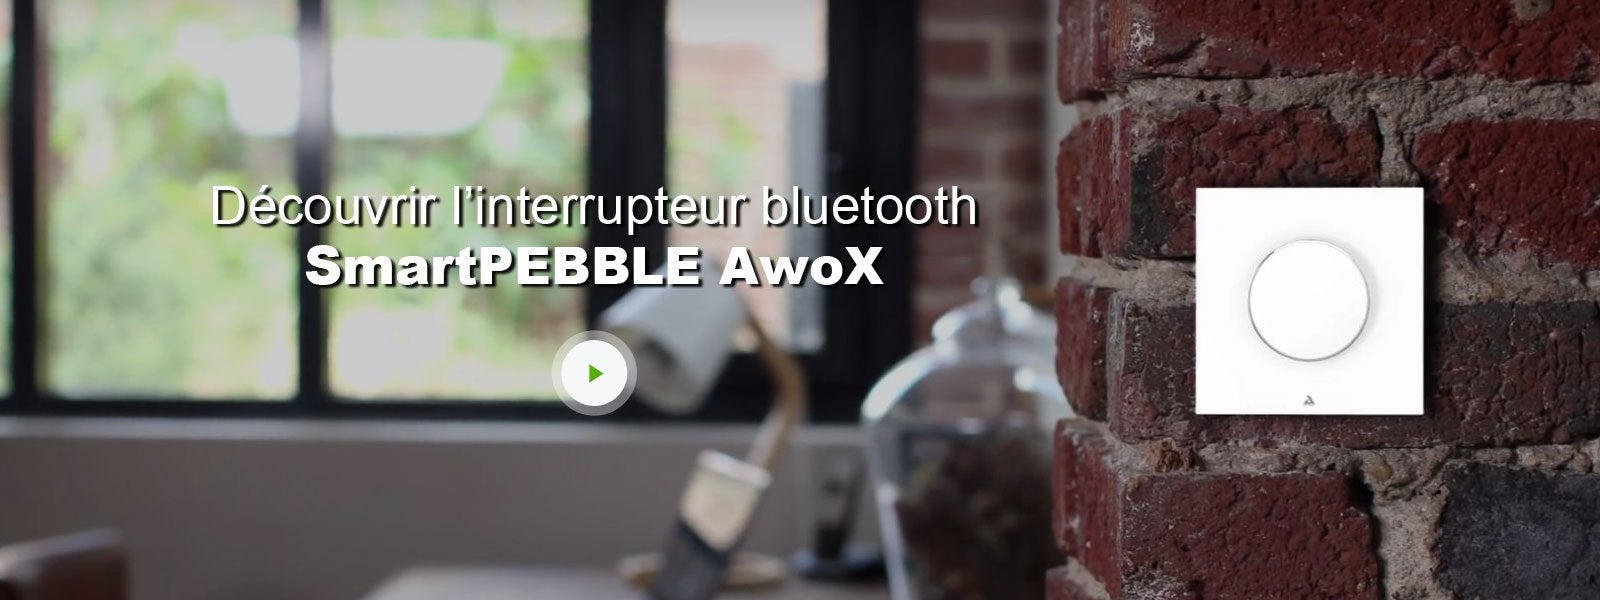 awox smartpebble interrupteur bluetooth commande gestuelle leroy merlin. Black Bedroom Furniture Sets. Home Design Ideas